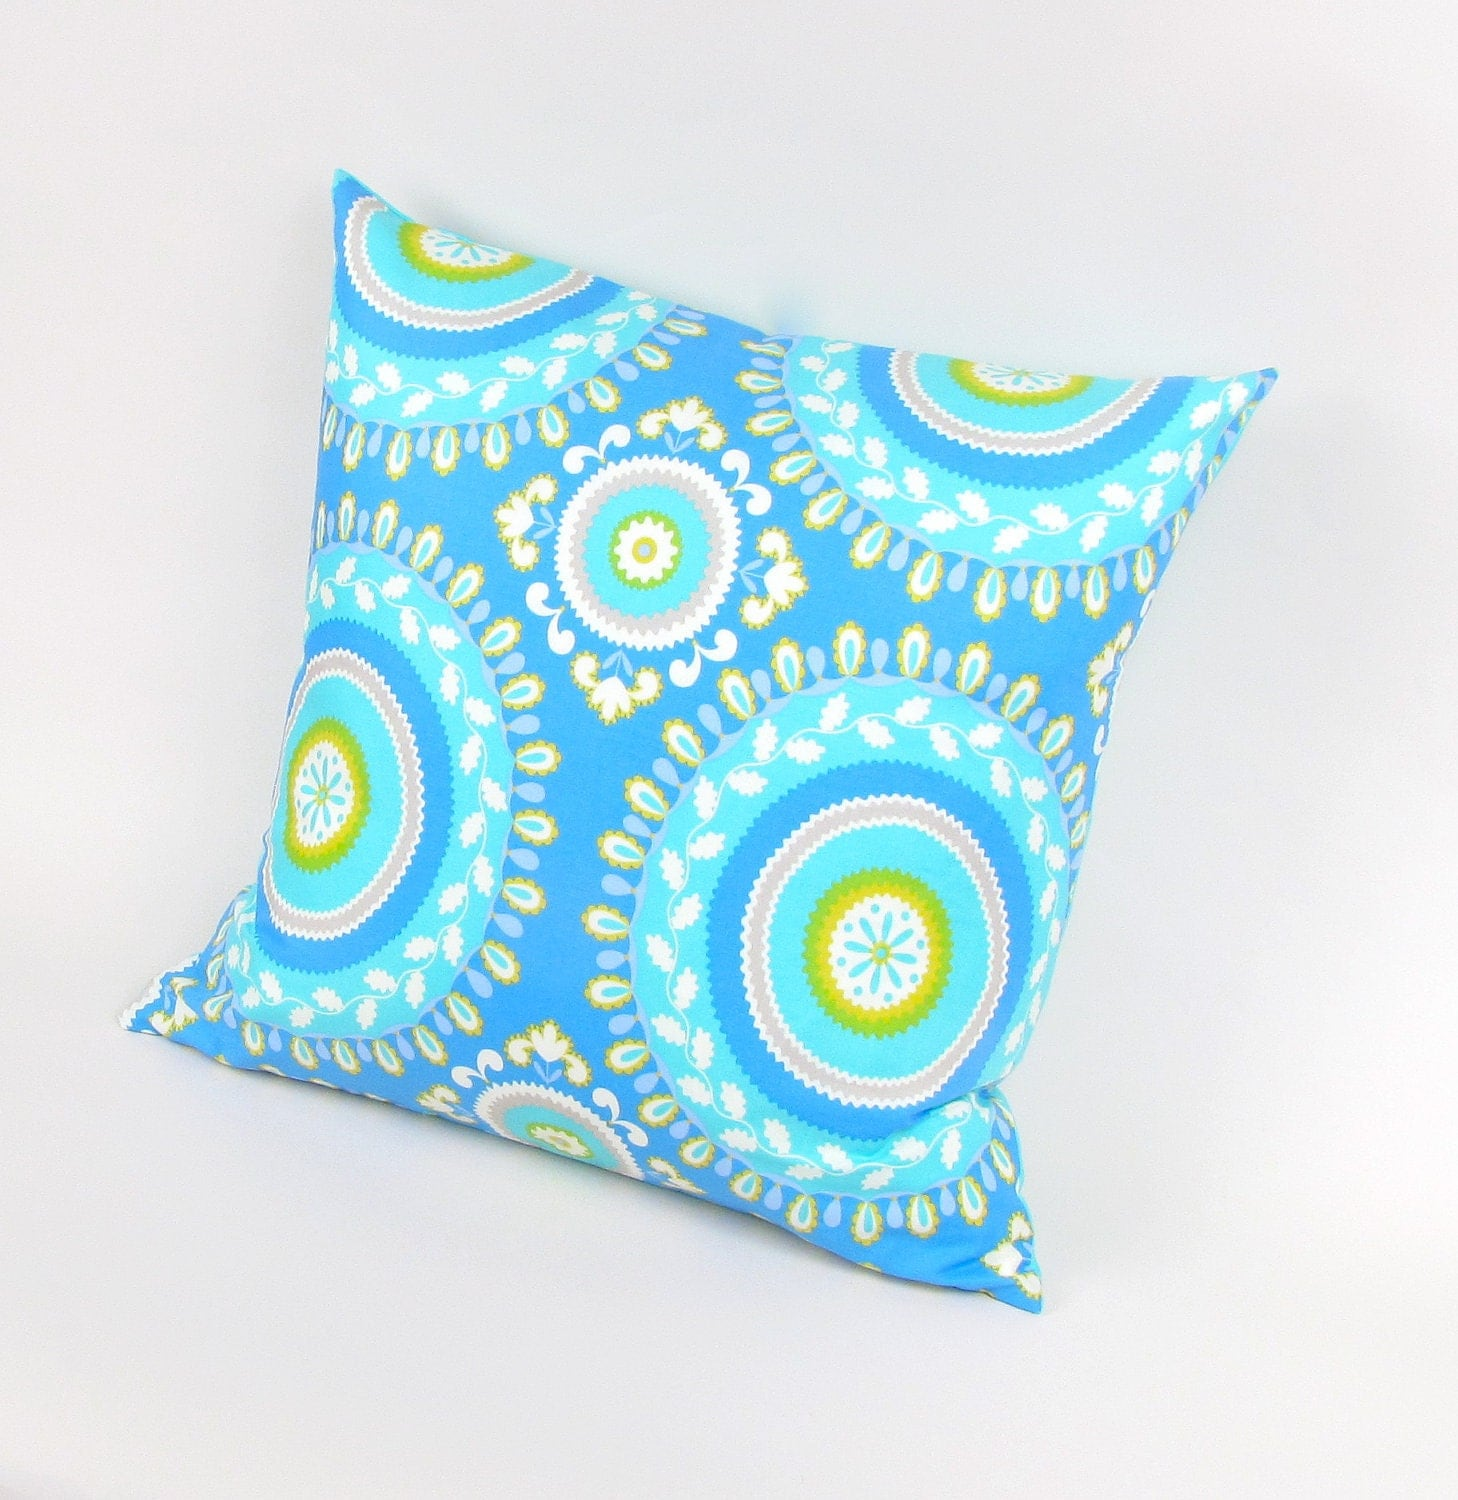 A Perfect Accessory For Adding Some Color To A Chair Or Couch.